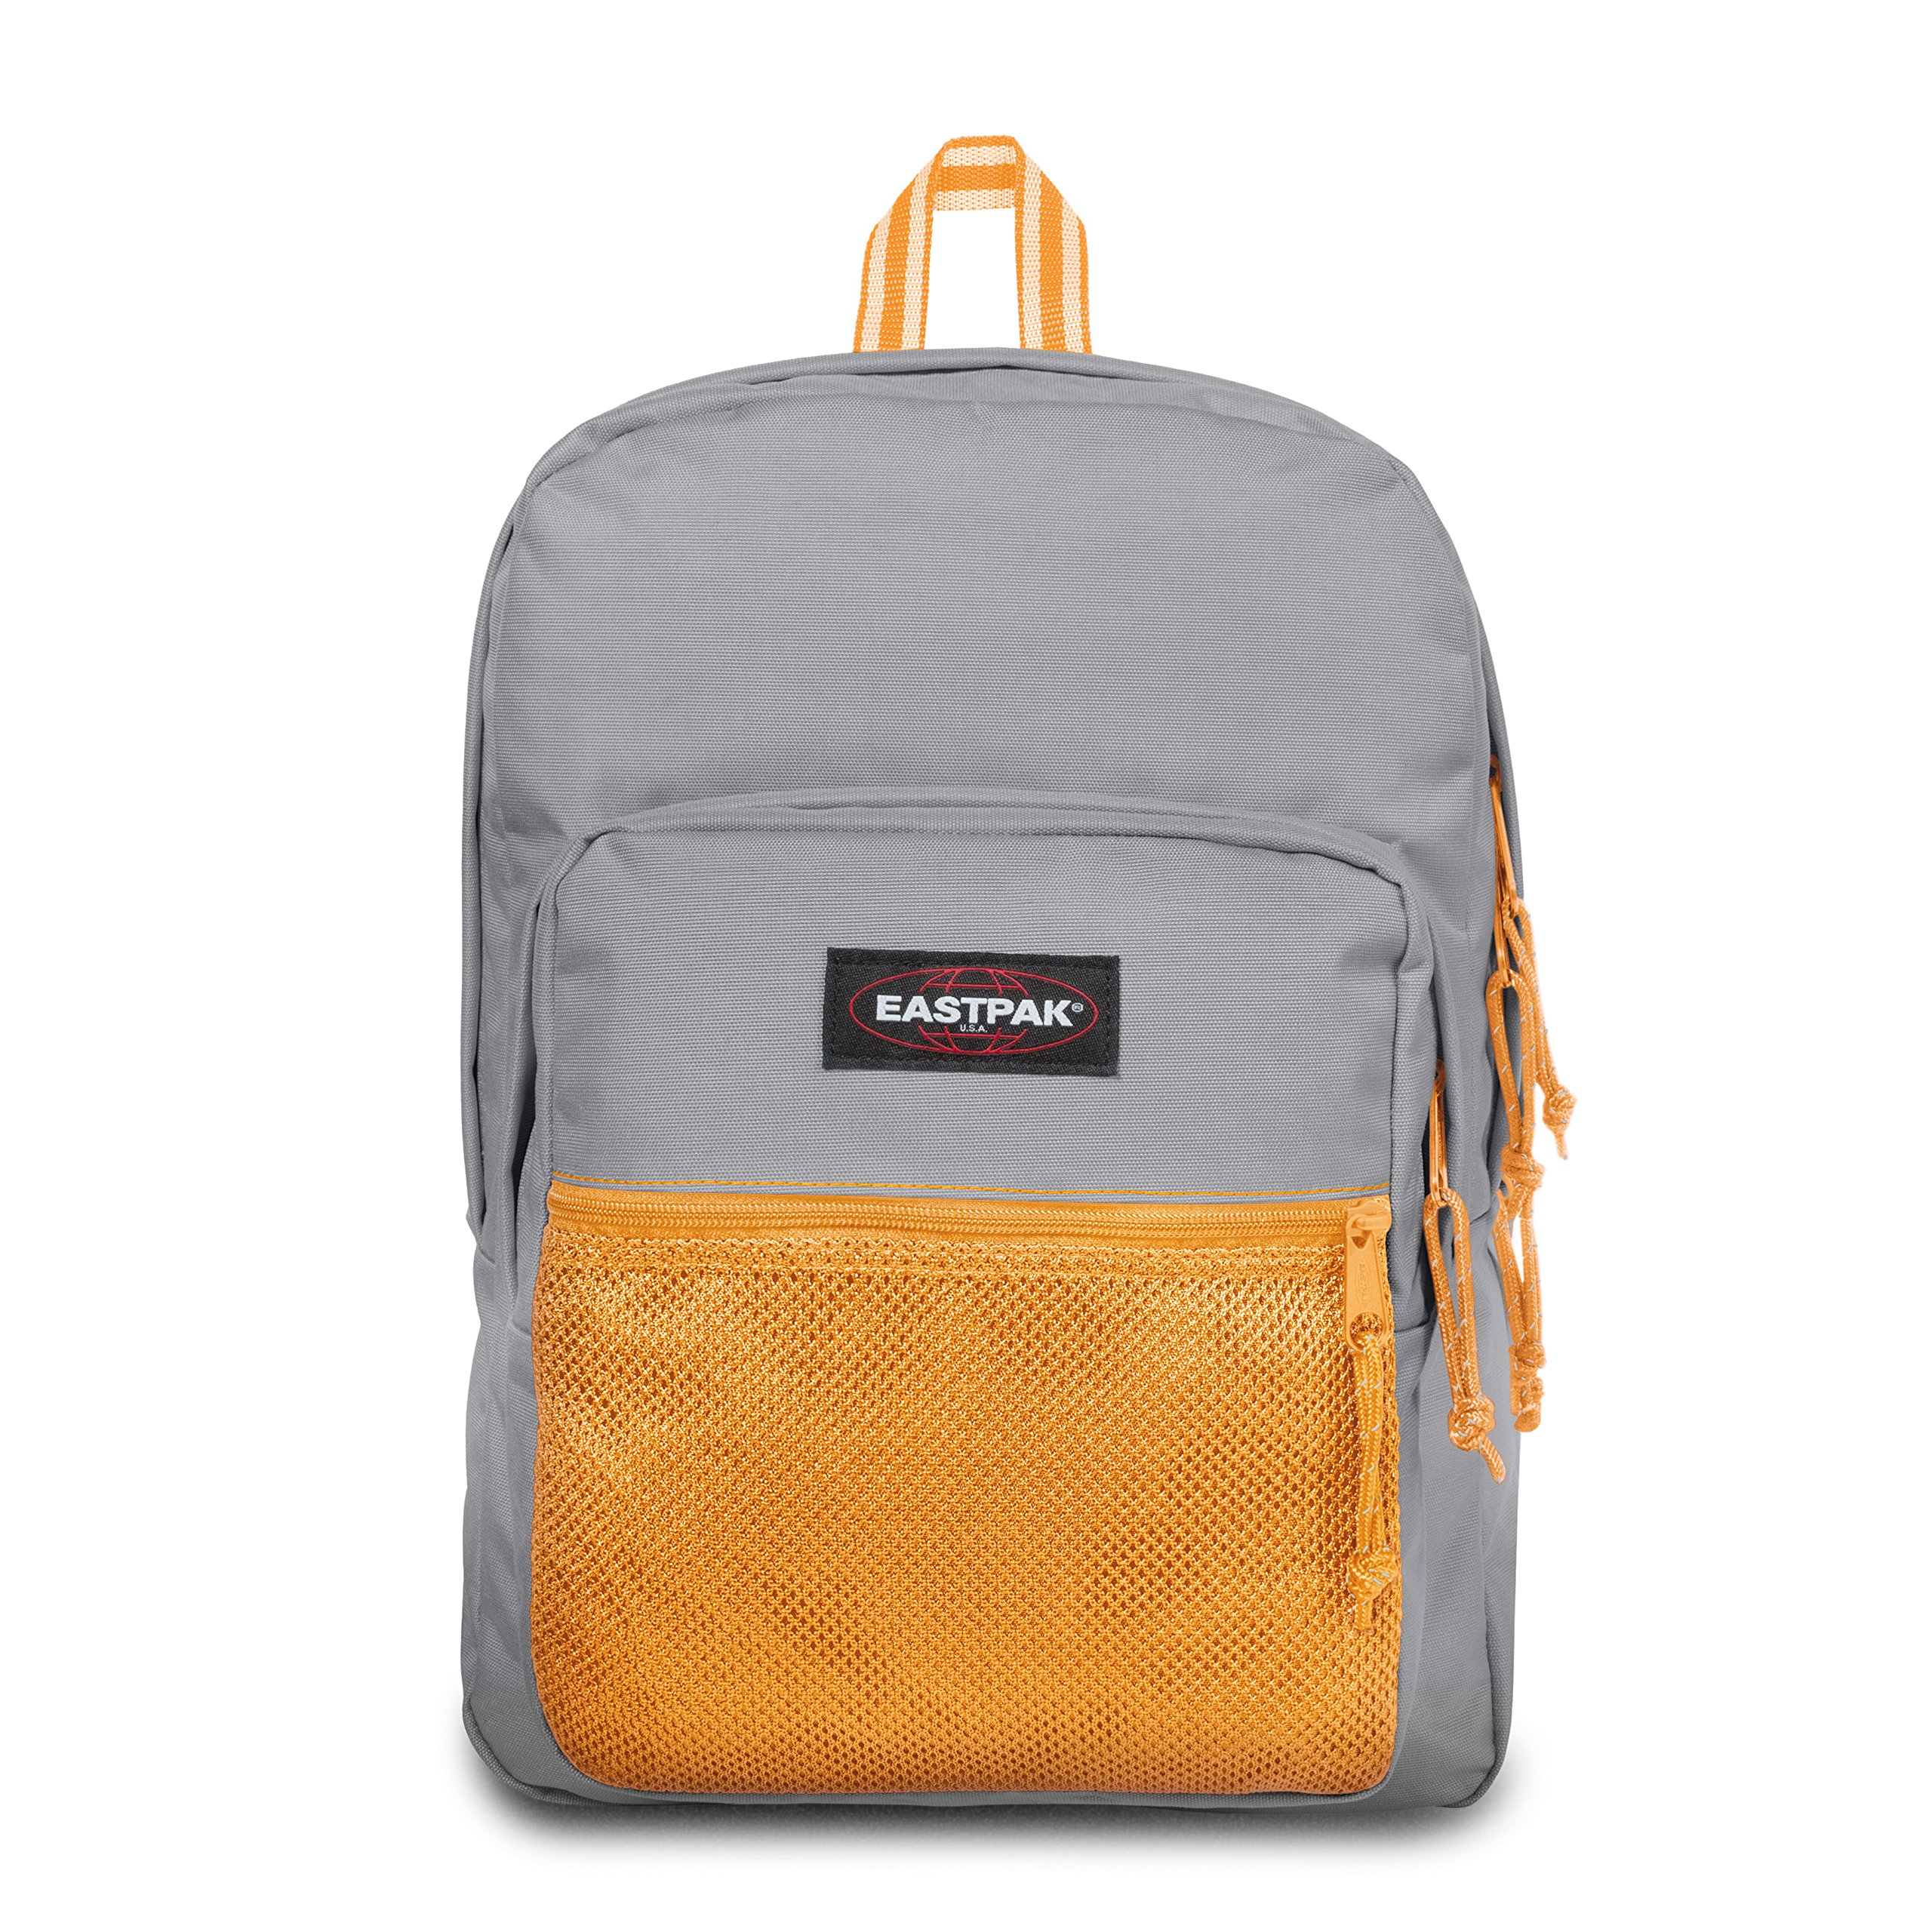 43cd71bfe3 Eastpak PINNACLE Zainetto per bambini, 42 cm, 38 liters, Grigio (Blakout  Concrete